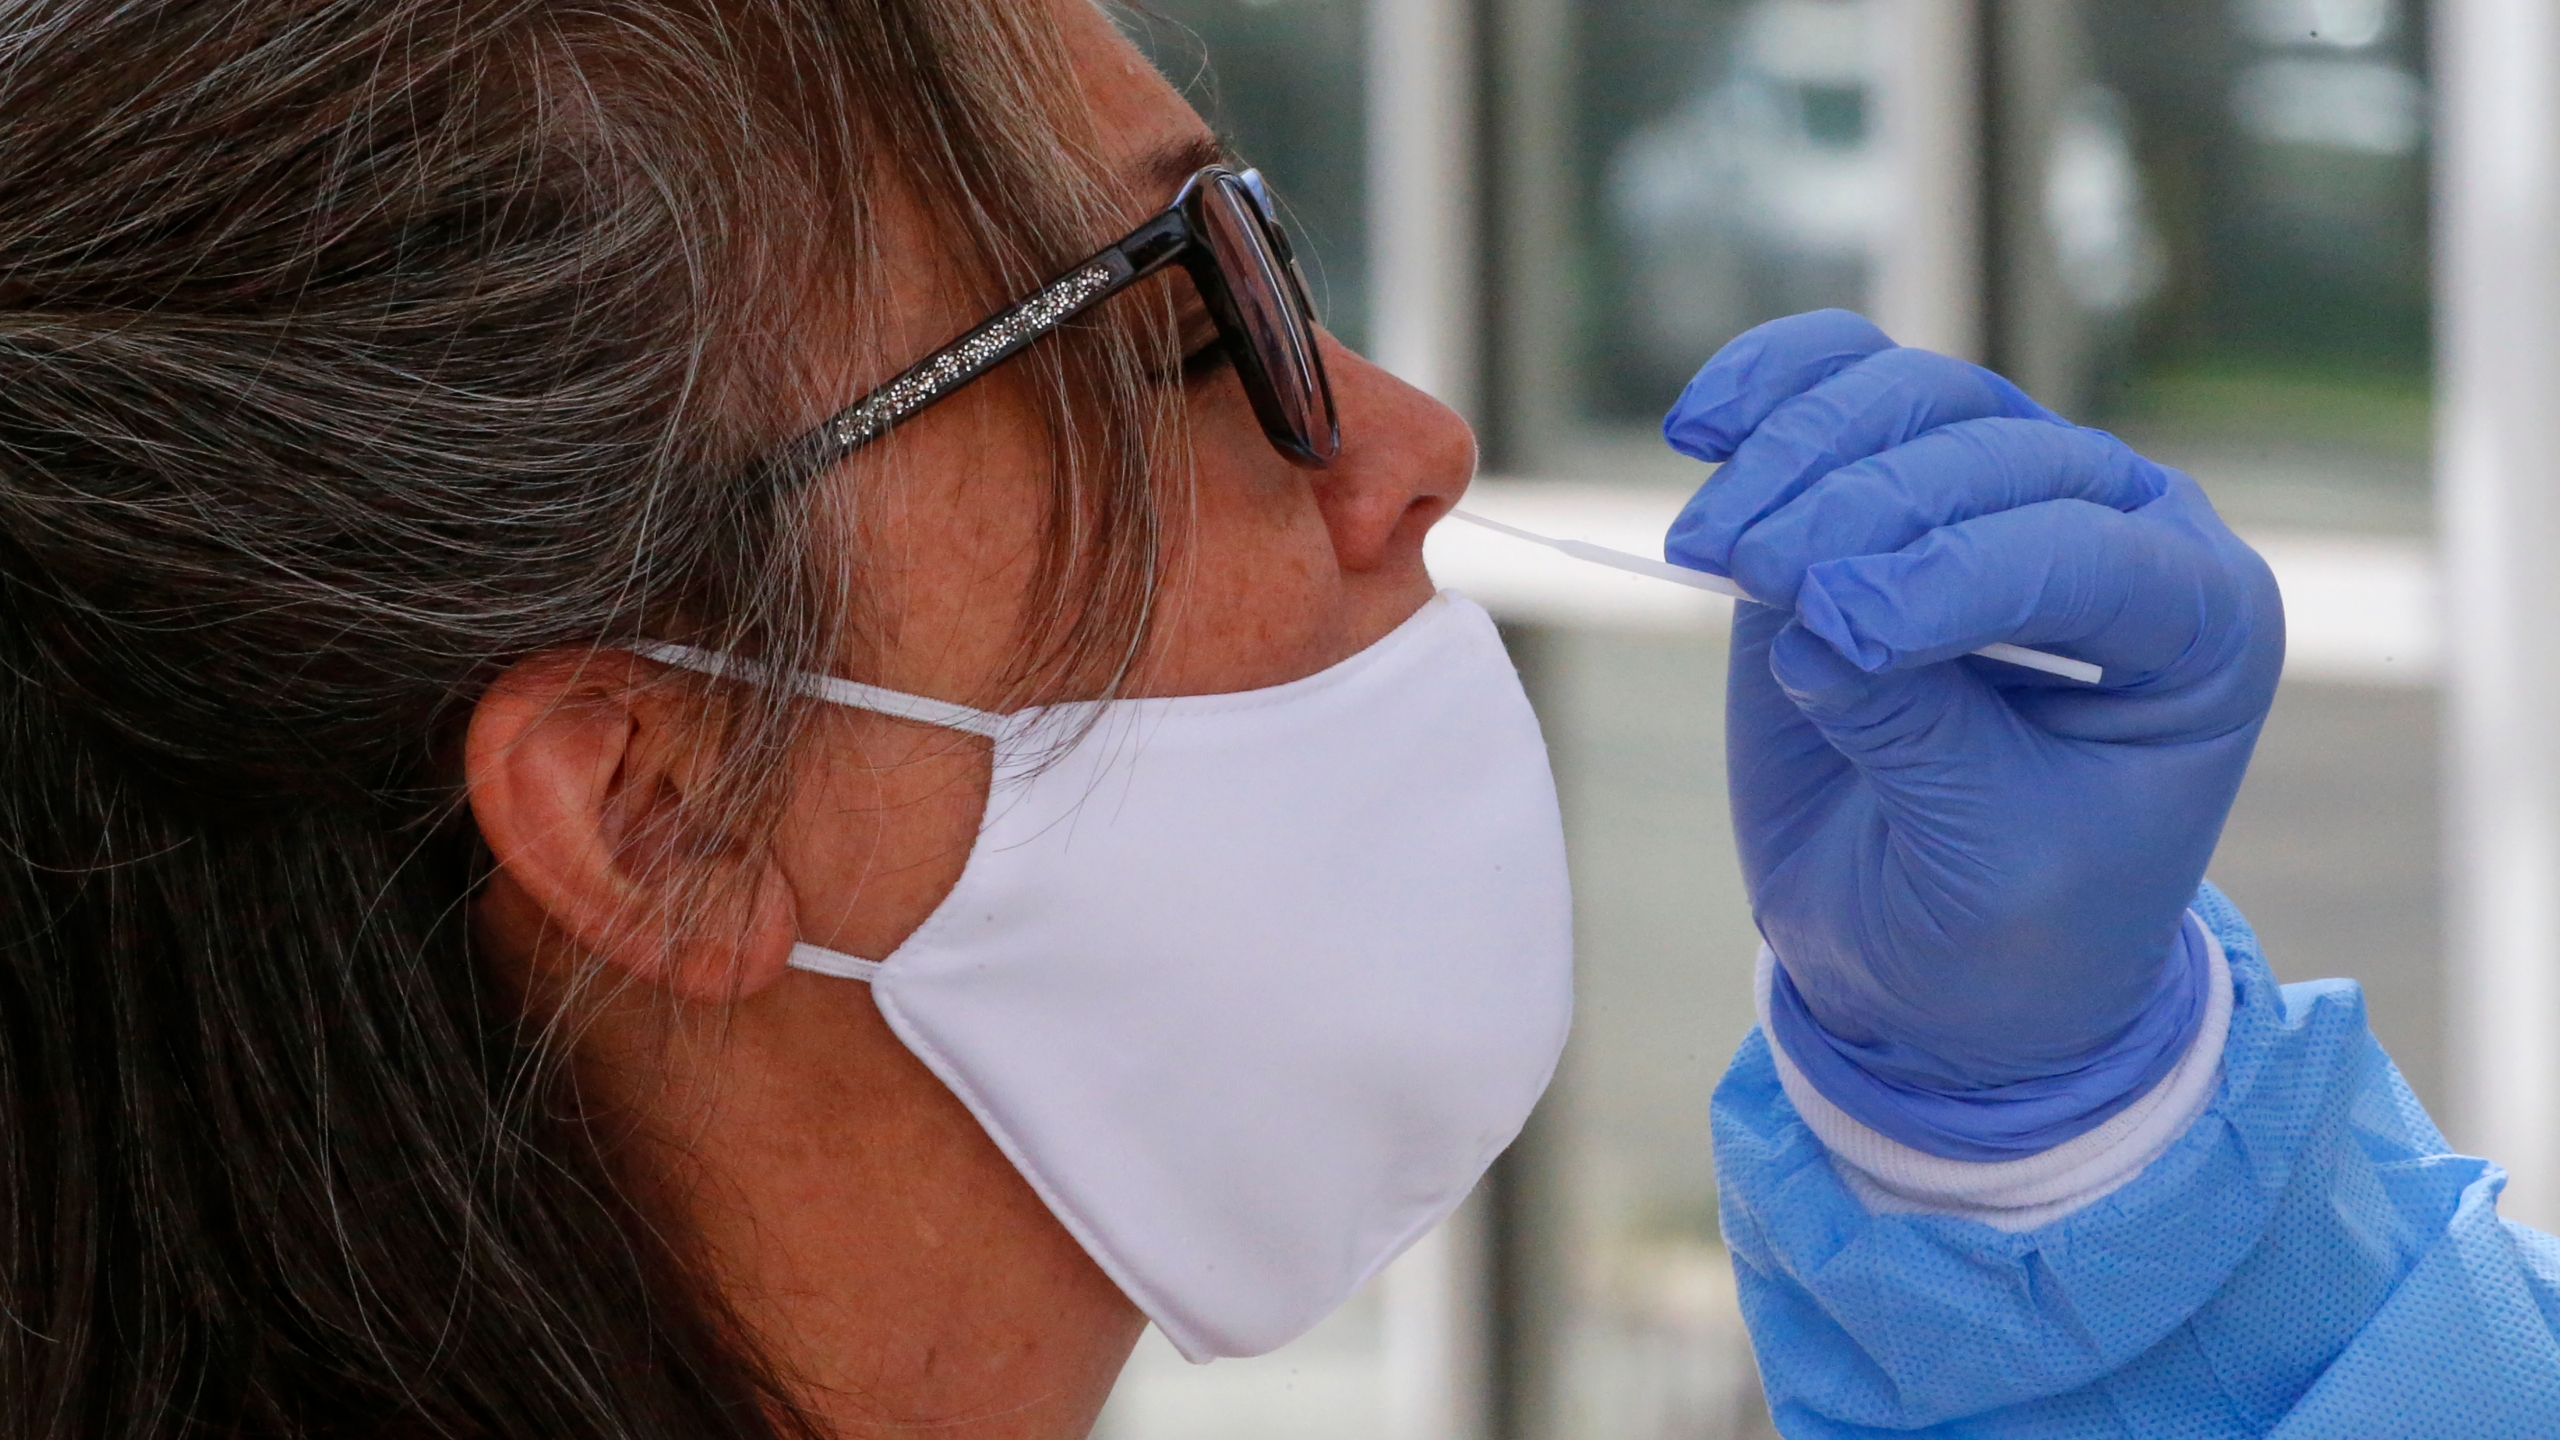 A woman receives a coronavirus test from Salt Lake County Health Department public health nurse Lee Cherie Booth outside the Salt Lake County Health Department Friday, June 12, 2020, in Salt Lake City. (AP Photo/Rick Bowmer)